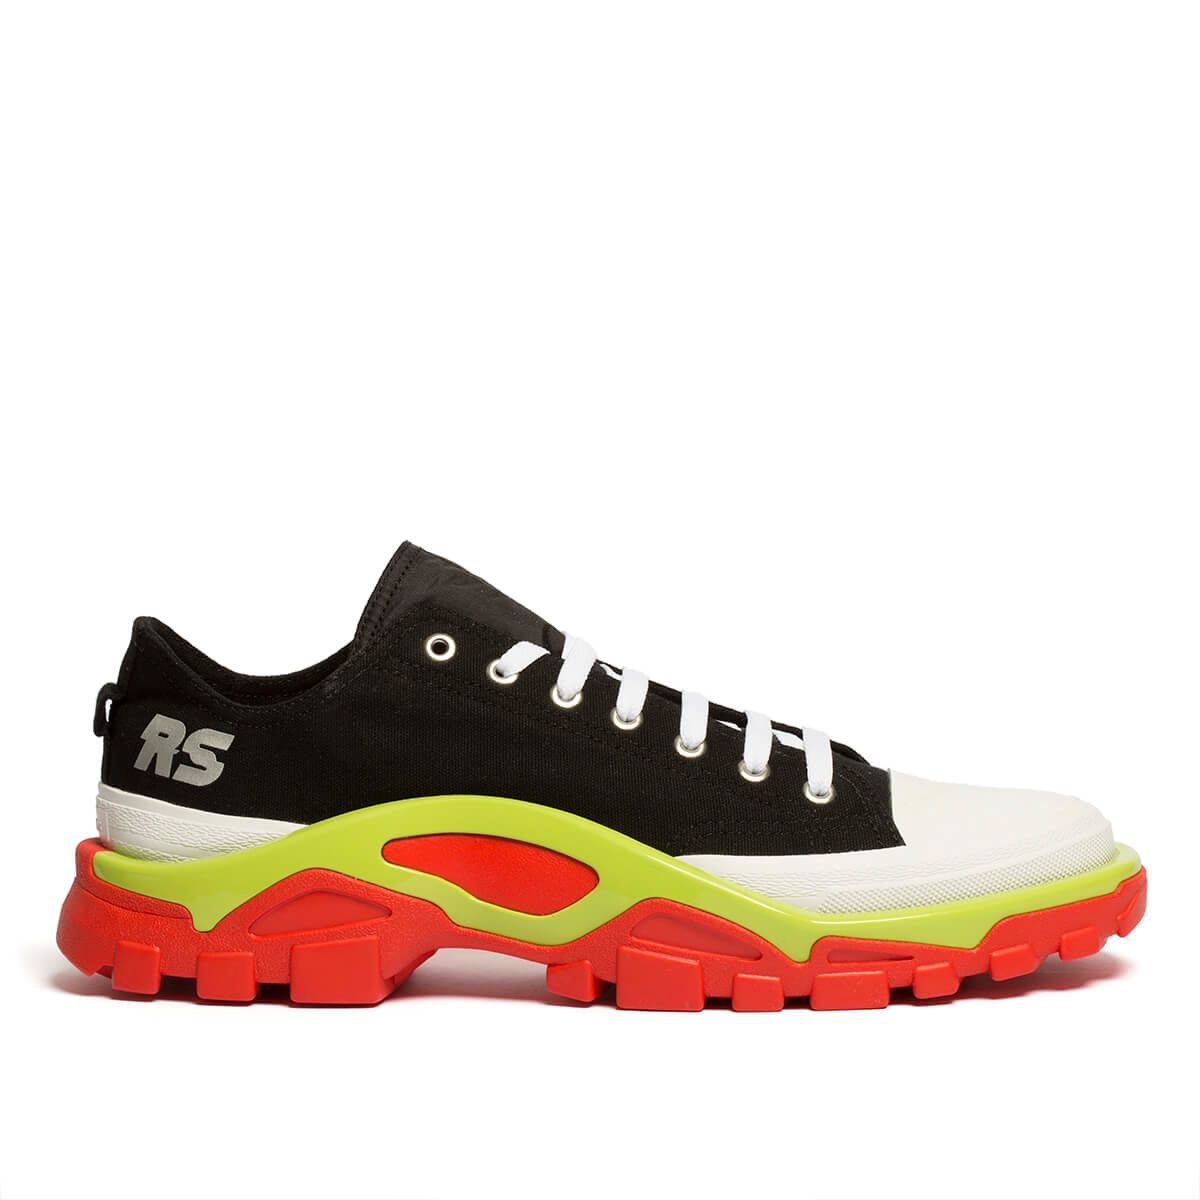 6a2917acd Detroit Runner sneakers from the S/S2019 Raf Simons x Adidas collection in  black